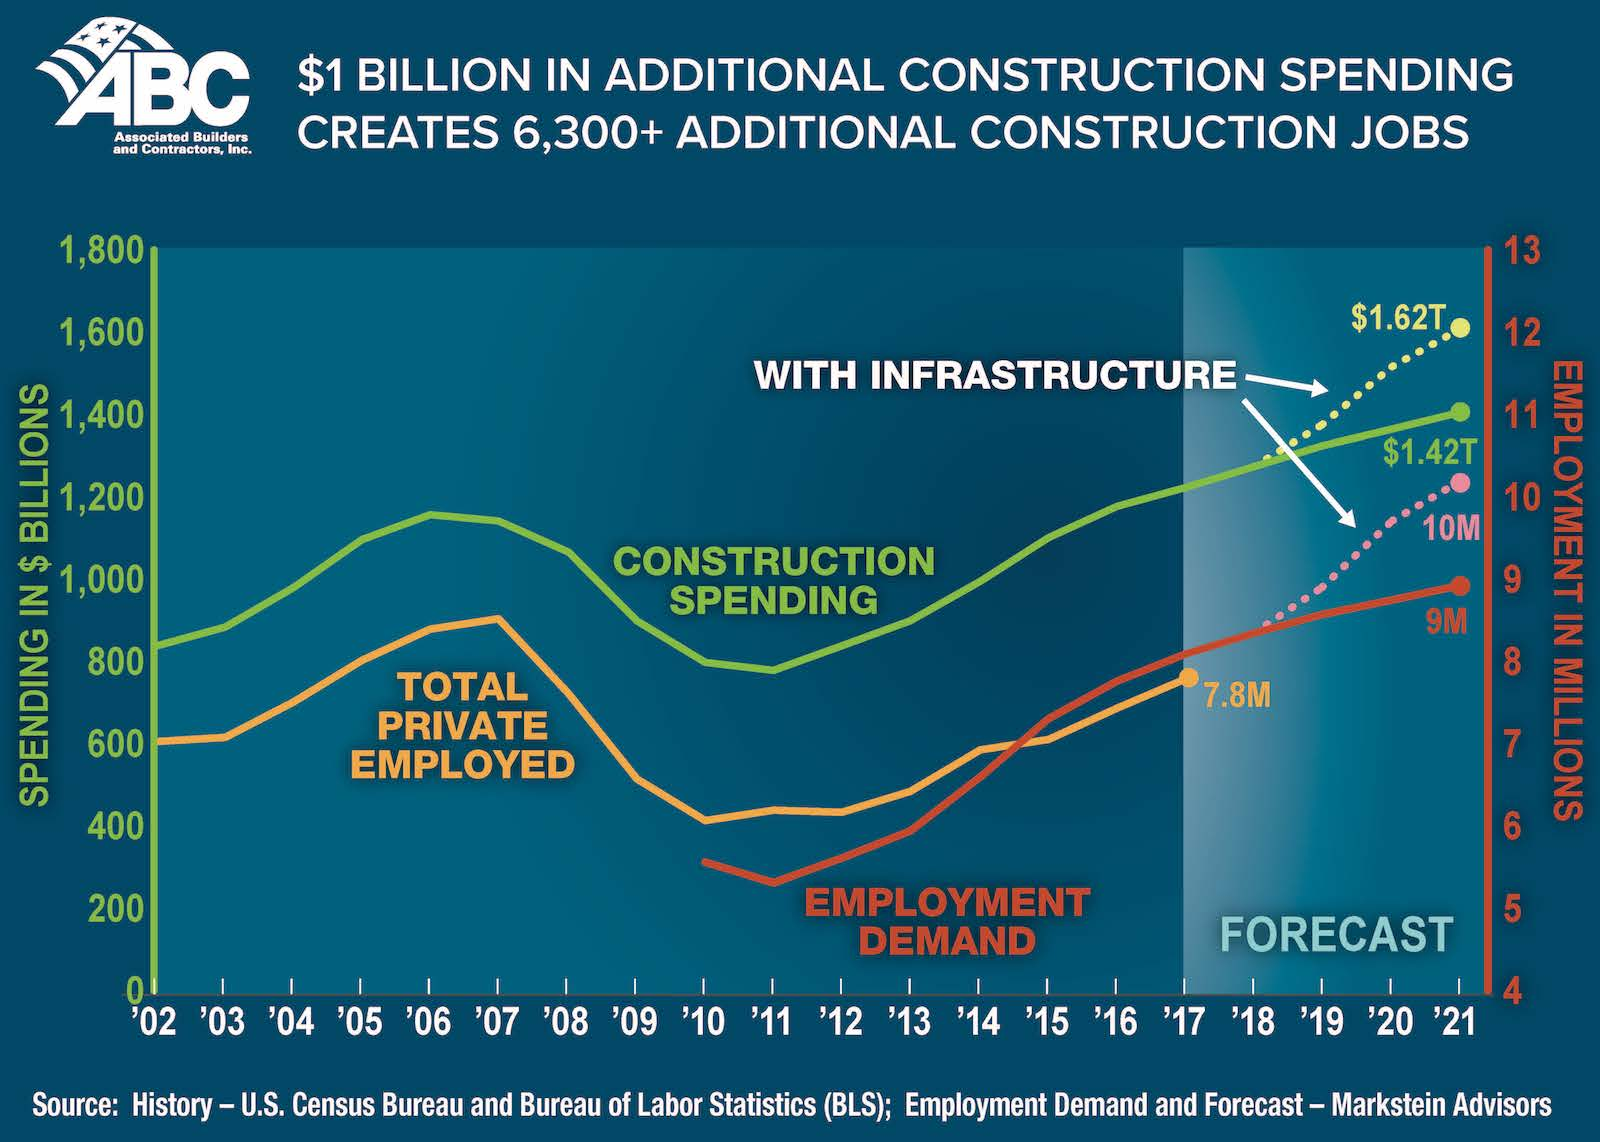 ABC says $1 billion in extra construction spending generates an average of at least 6,300 construction jobs.